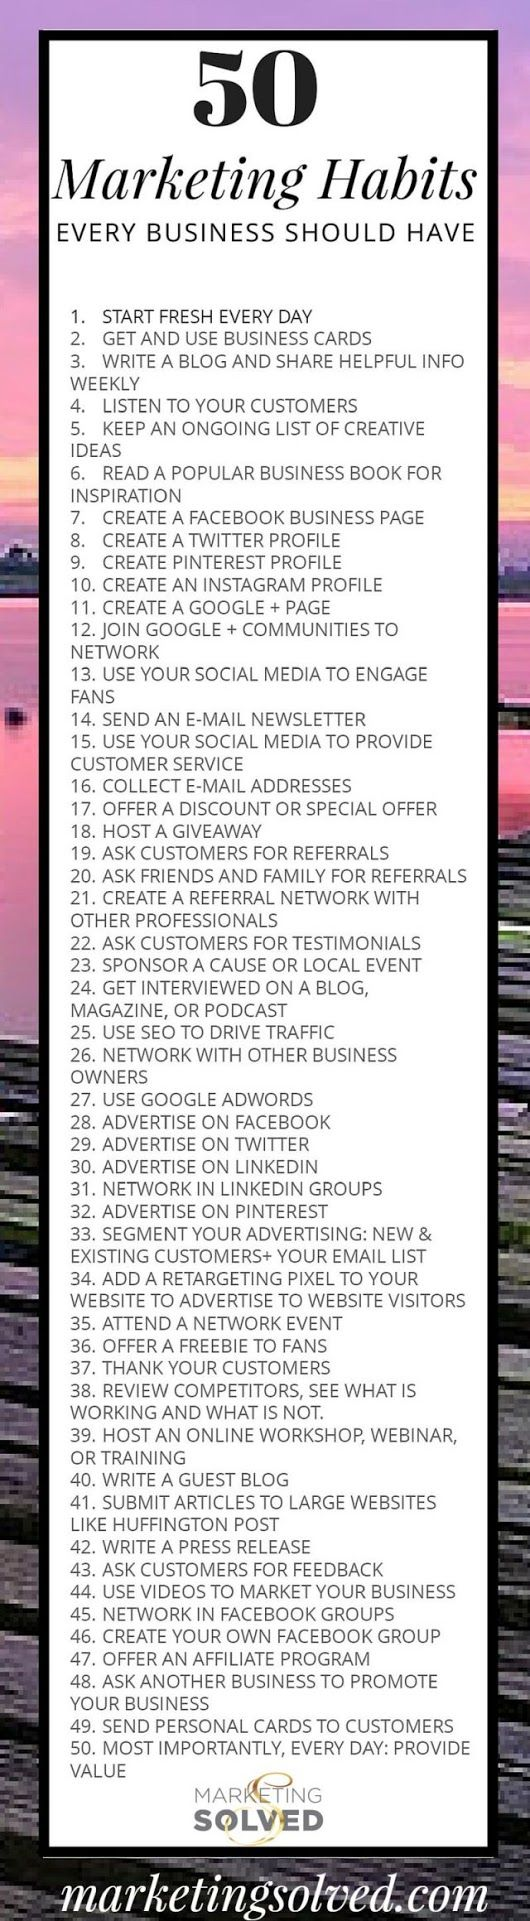 50 Marketing Habits EVERY Business Should Be Following